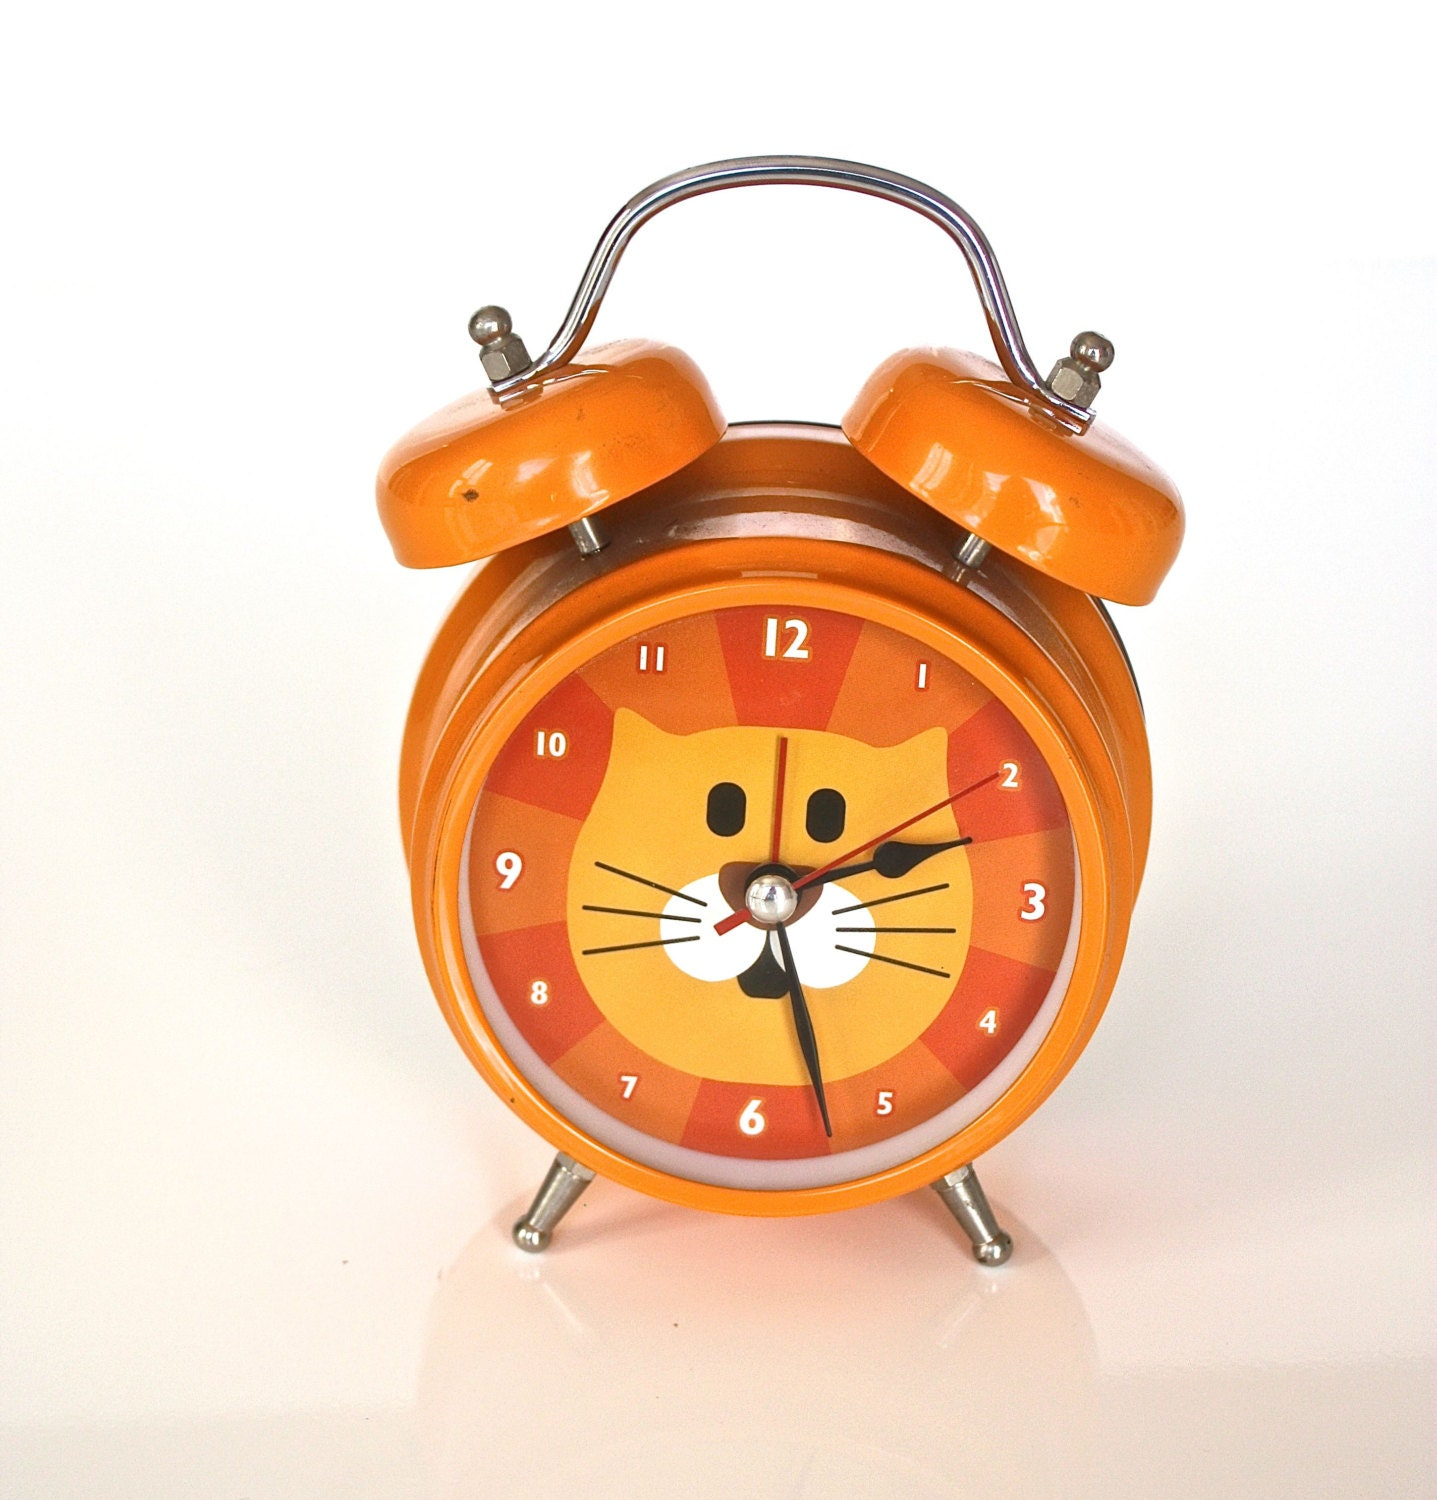 Kitty cat clock alarm meows too cute - Kitty cat clock ...